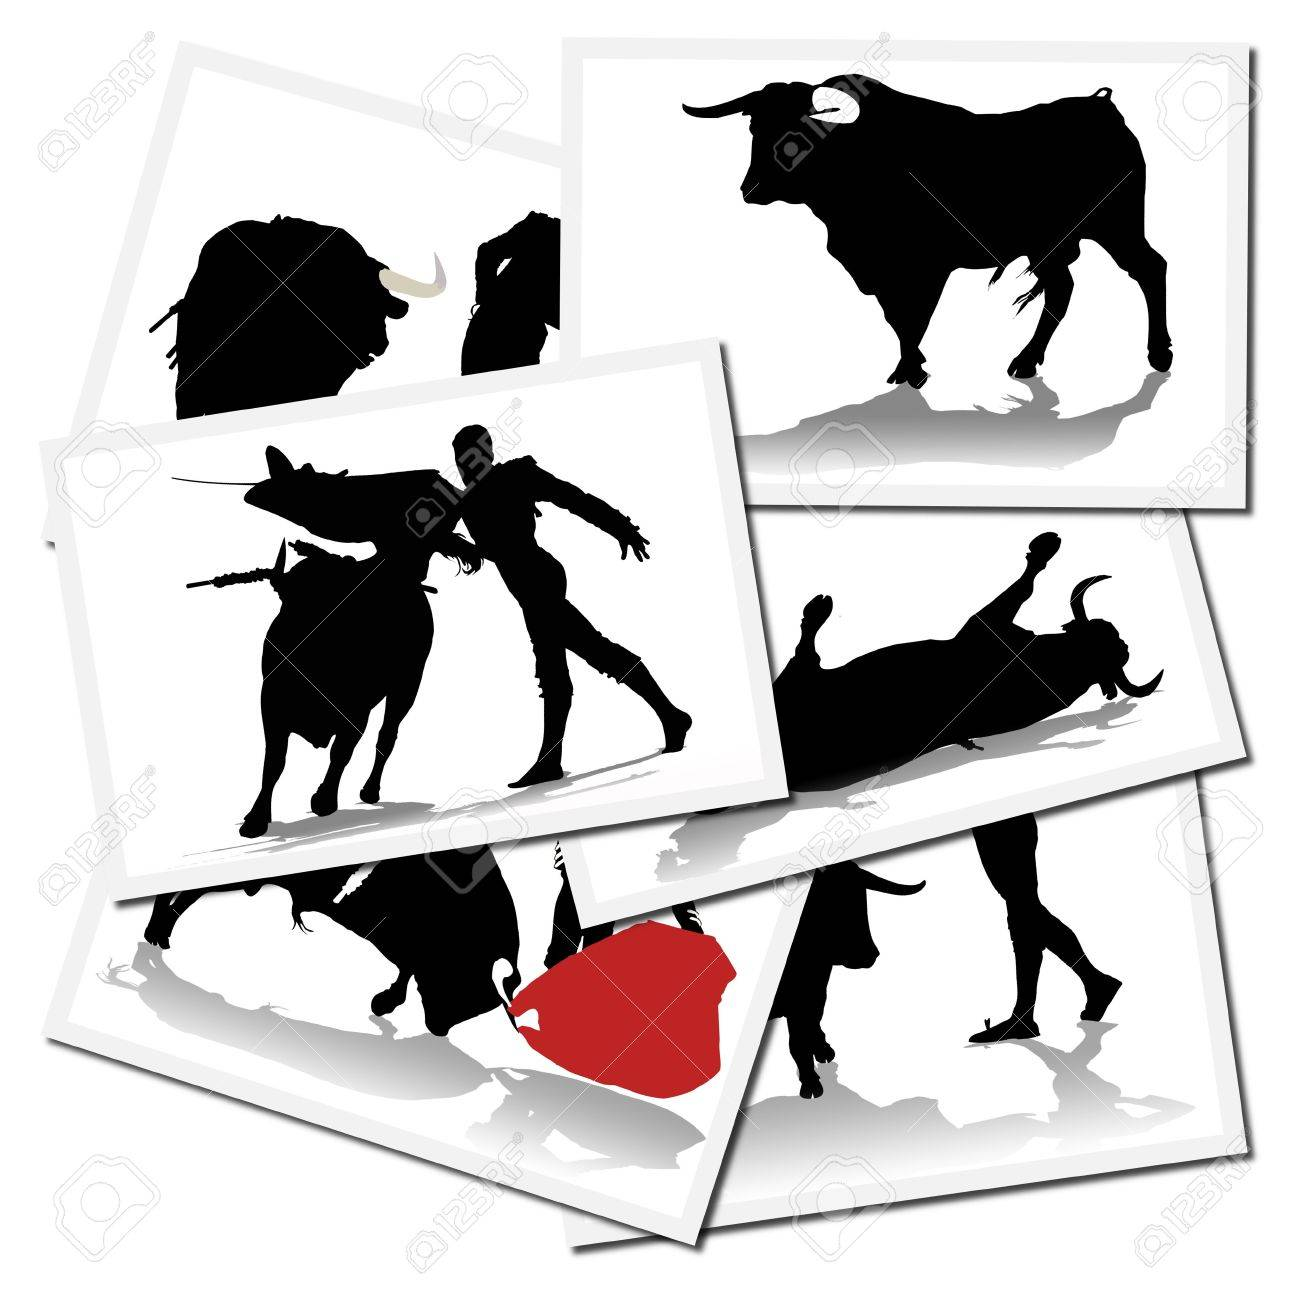 Collection of illustrations with a bullfighter in action, spain Stock Photo - 6071086